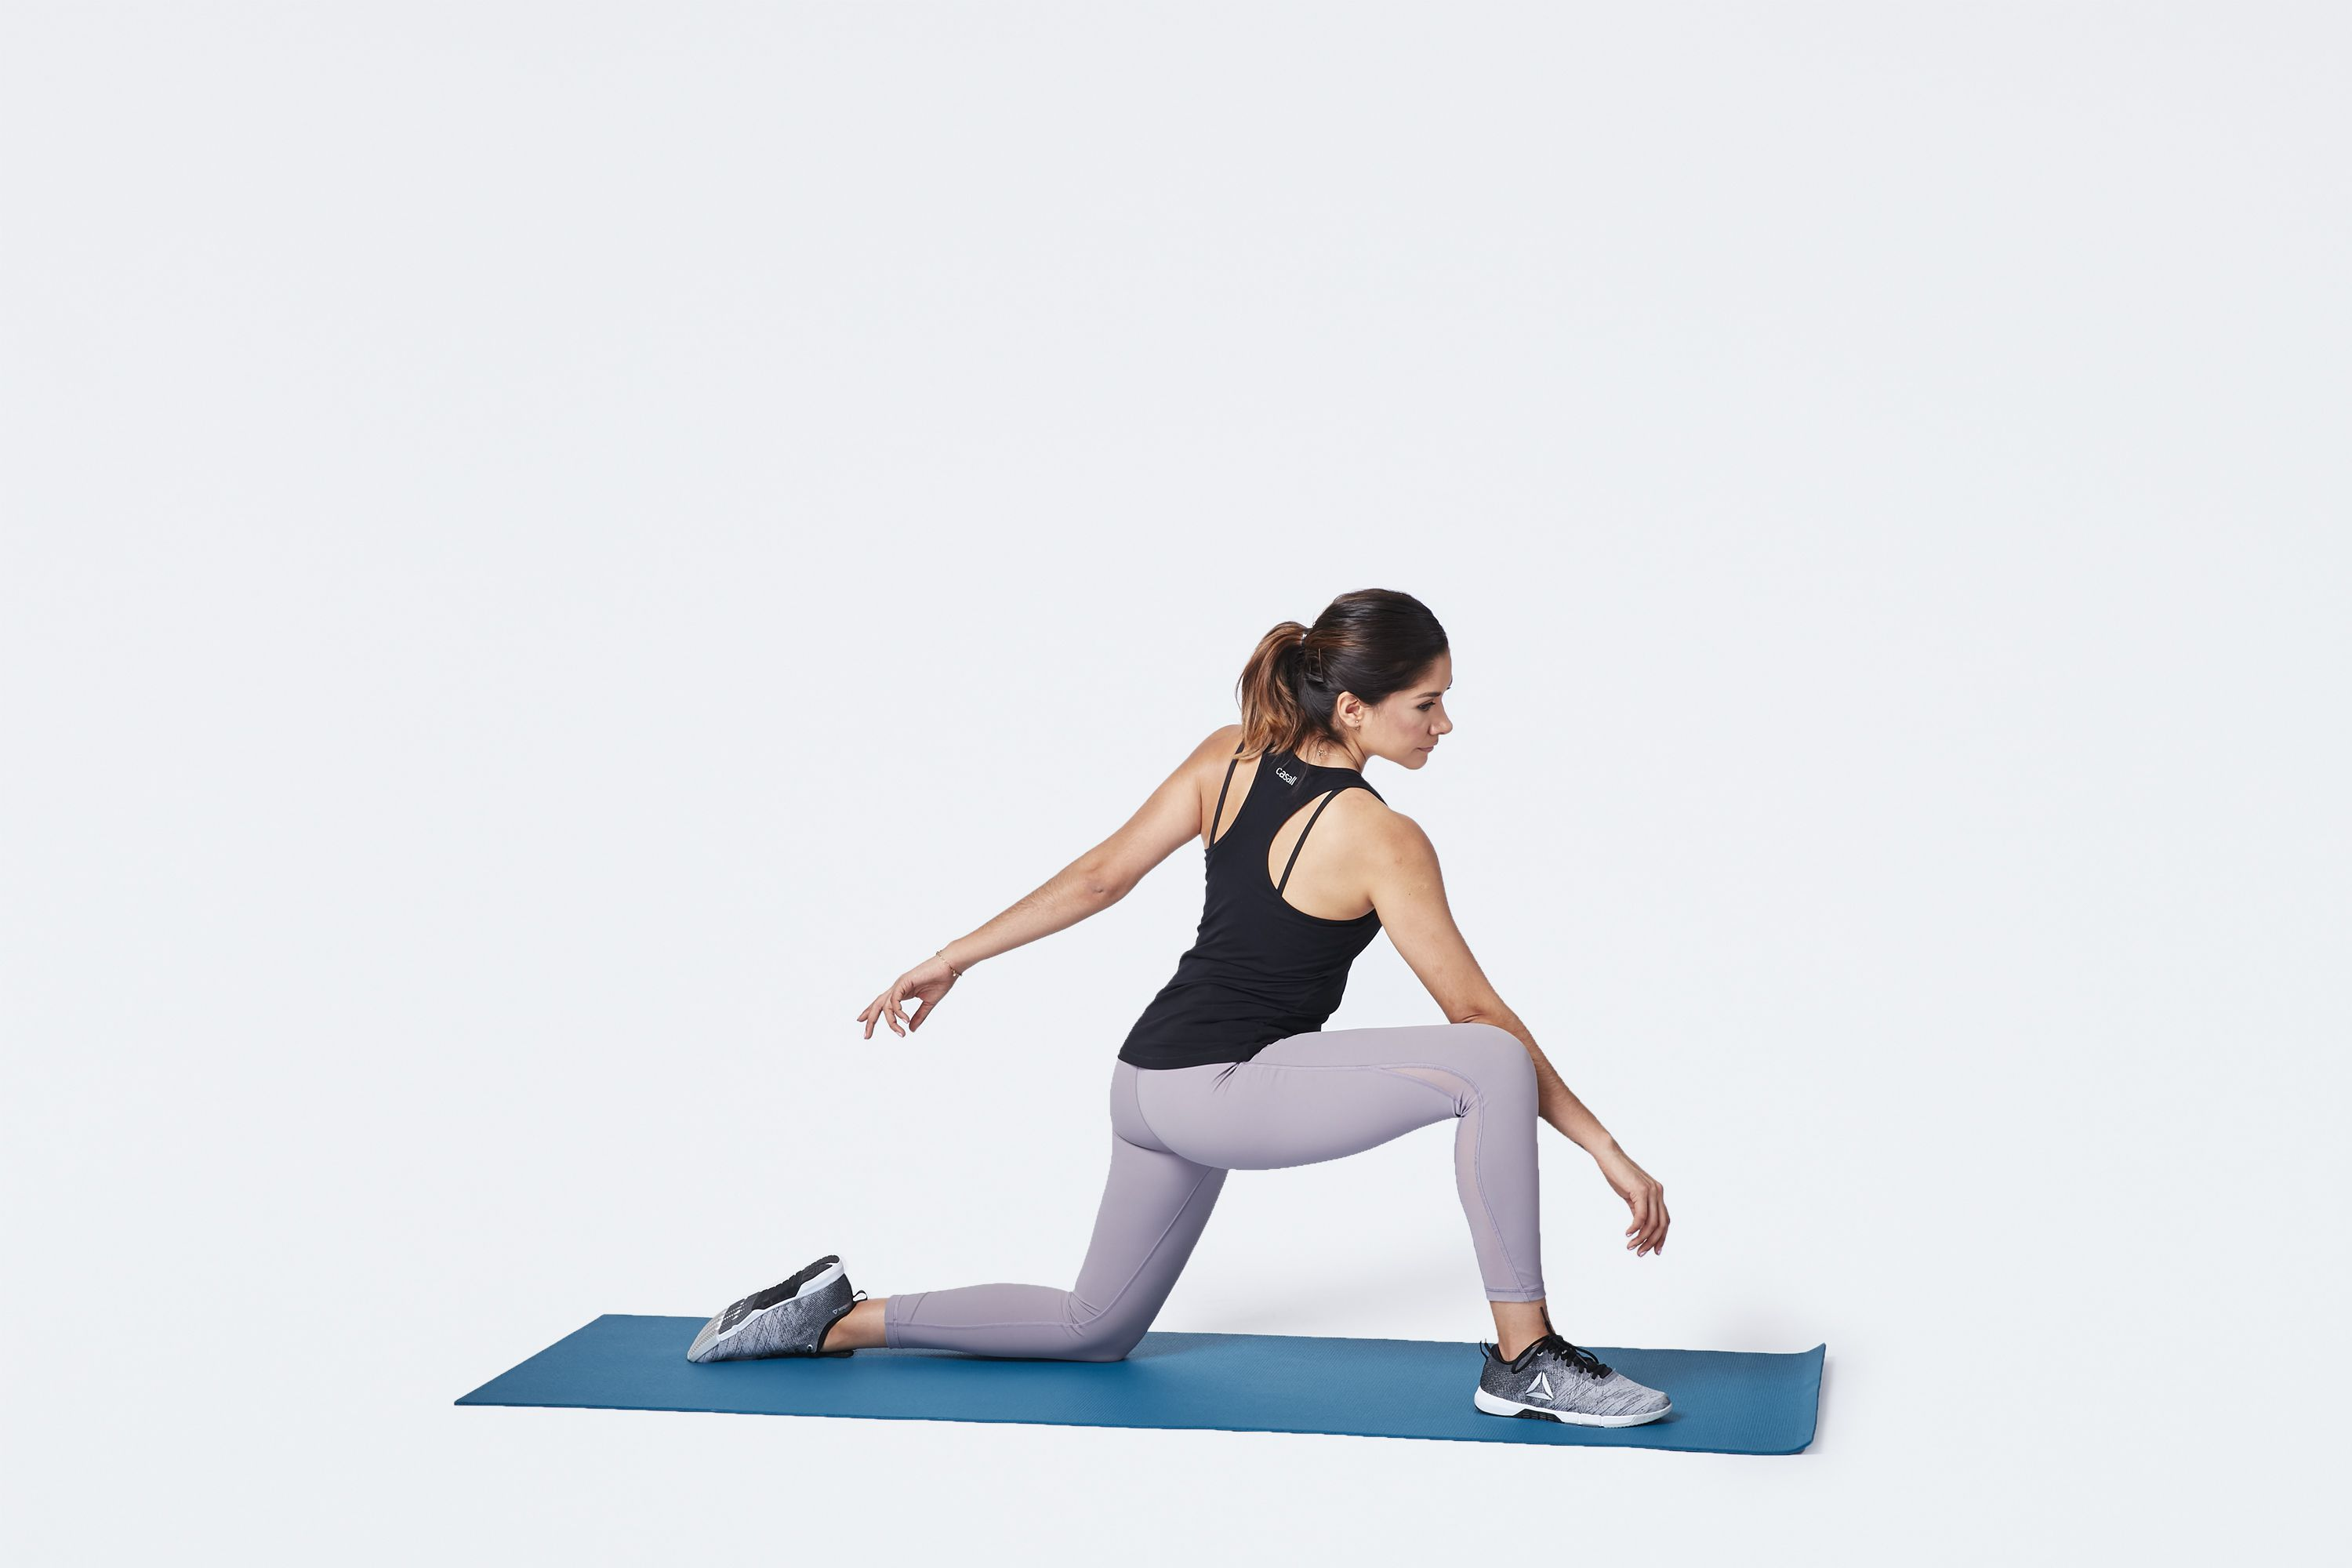 Woman performing low lunge twist stretch